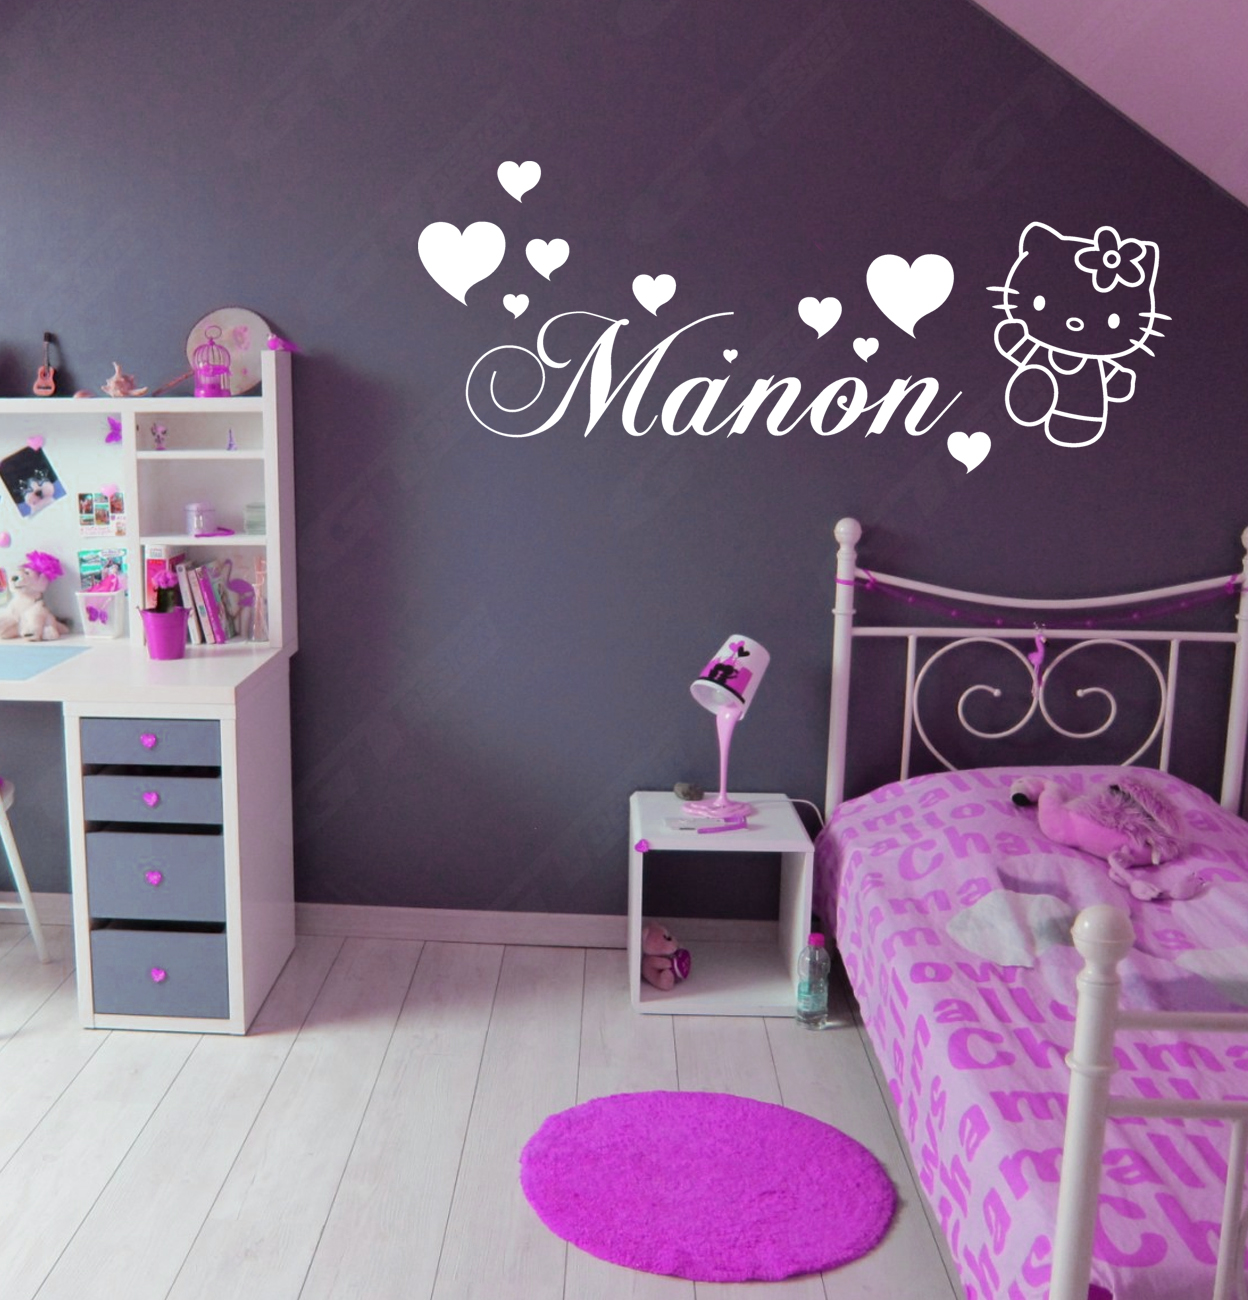 sticker mural geant hello kitty prenom personalise decoration chambre kitt006b ebay. Black Bedroom Furniture Sets. Home Design Ideas